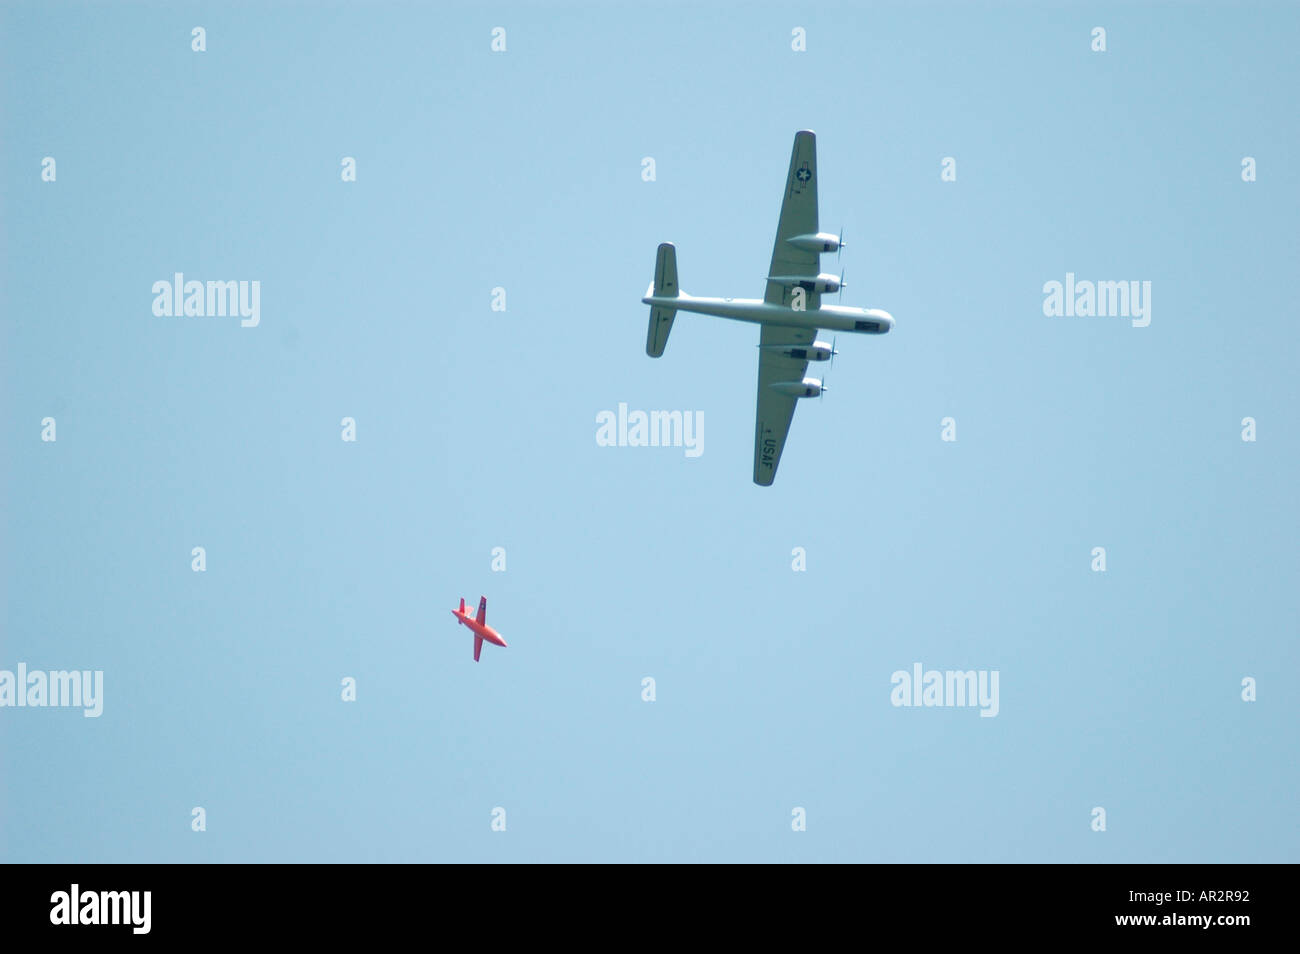 Bell X 1 Plane Stock Photos & Bell X 1 Plane Stock Images - Alamy